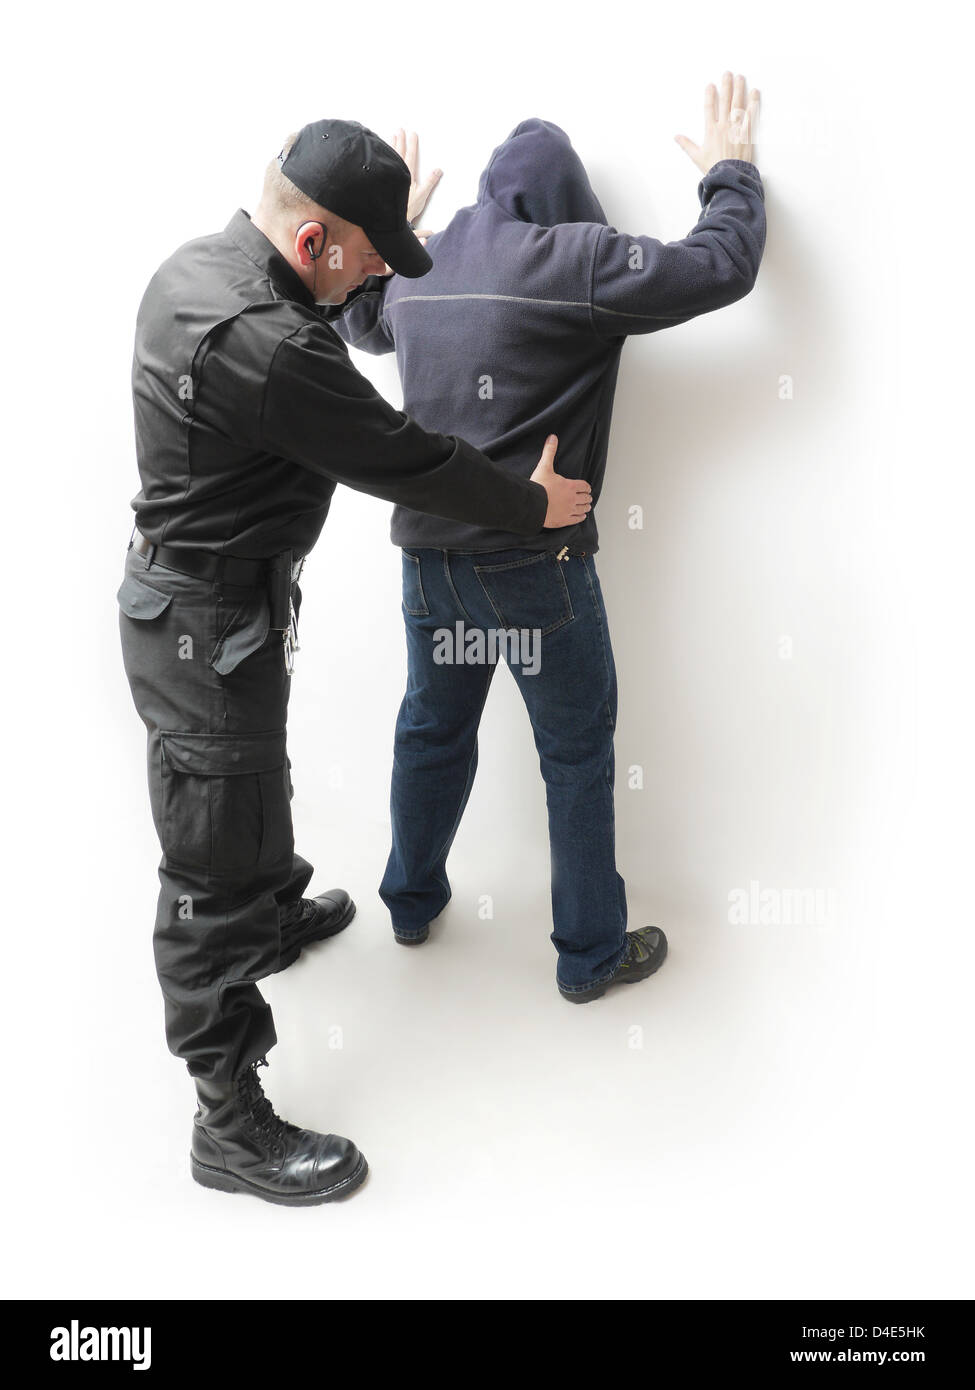 Man being searched by a policeman in black uniform - Stock Image